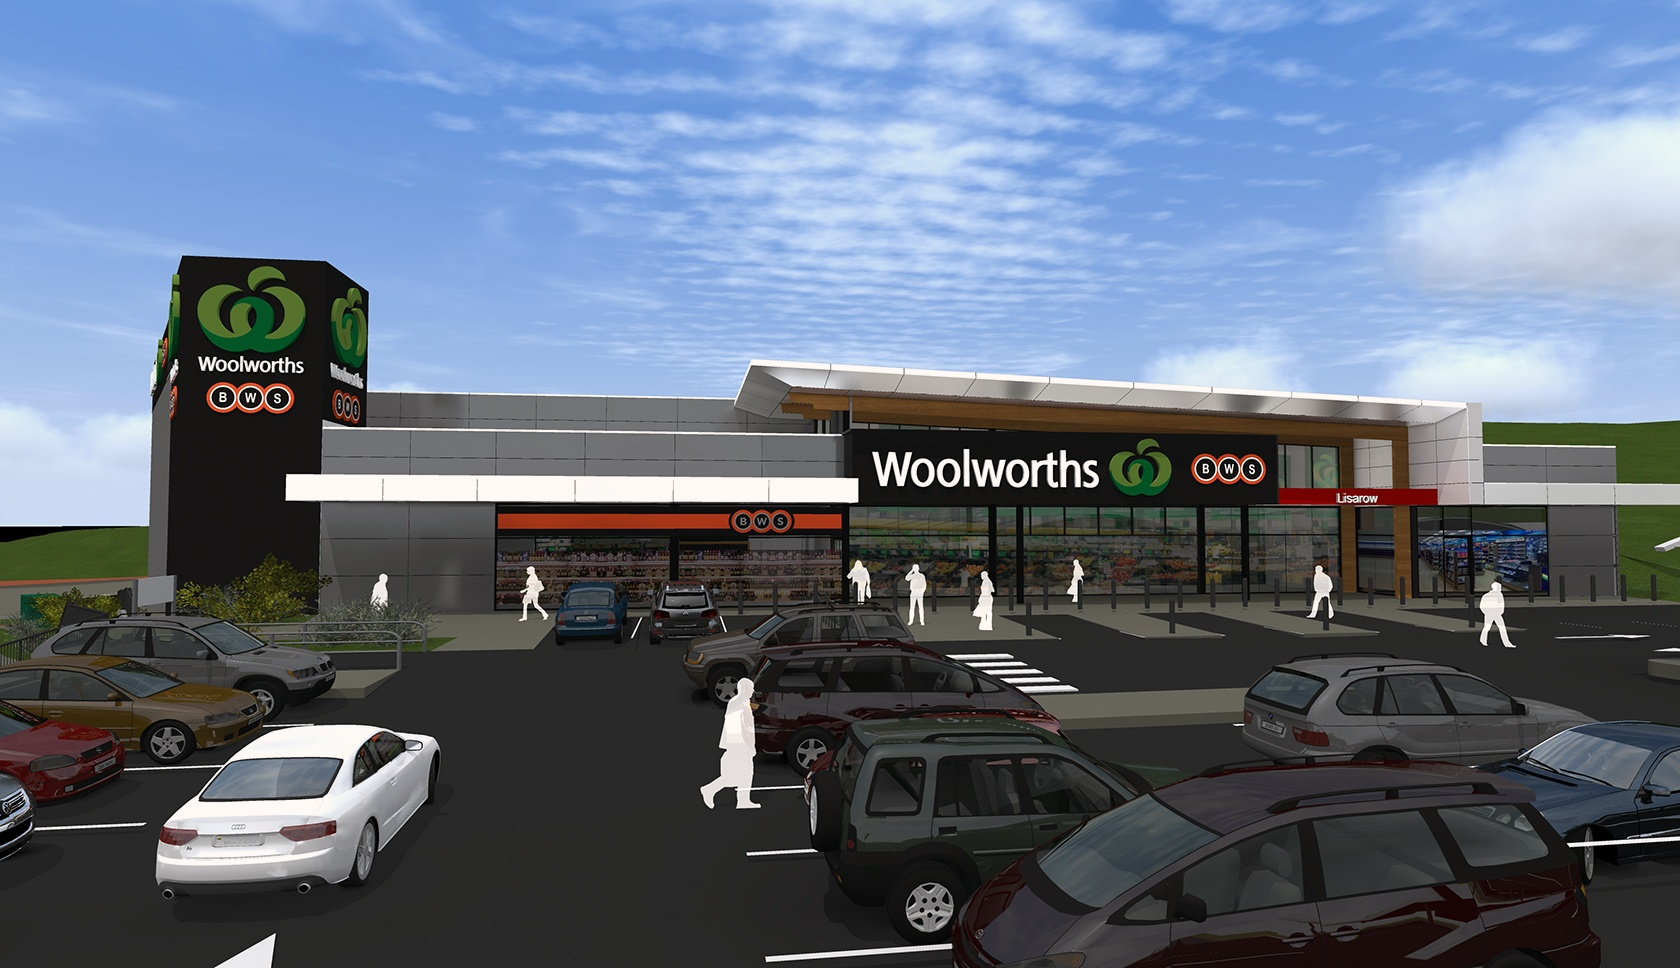 Woolworths Lisarow drawing of the retail outlet front entrance